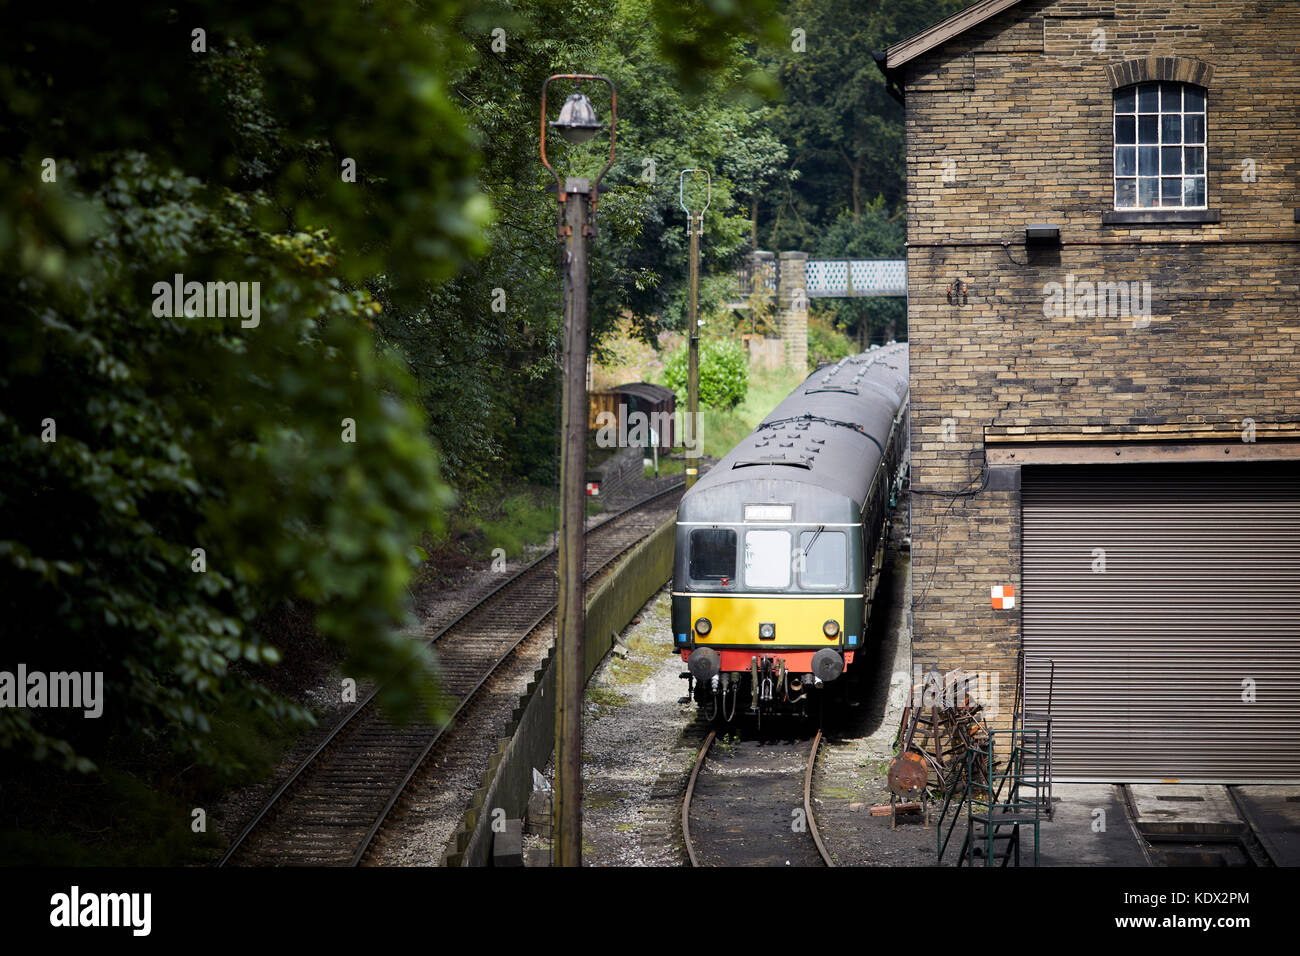 Pennines village, Haworth in West Yorkshire, England. a DMU on the Keighley and Worth Valley Railway - Stock Image